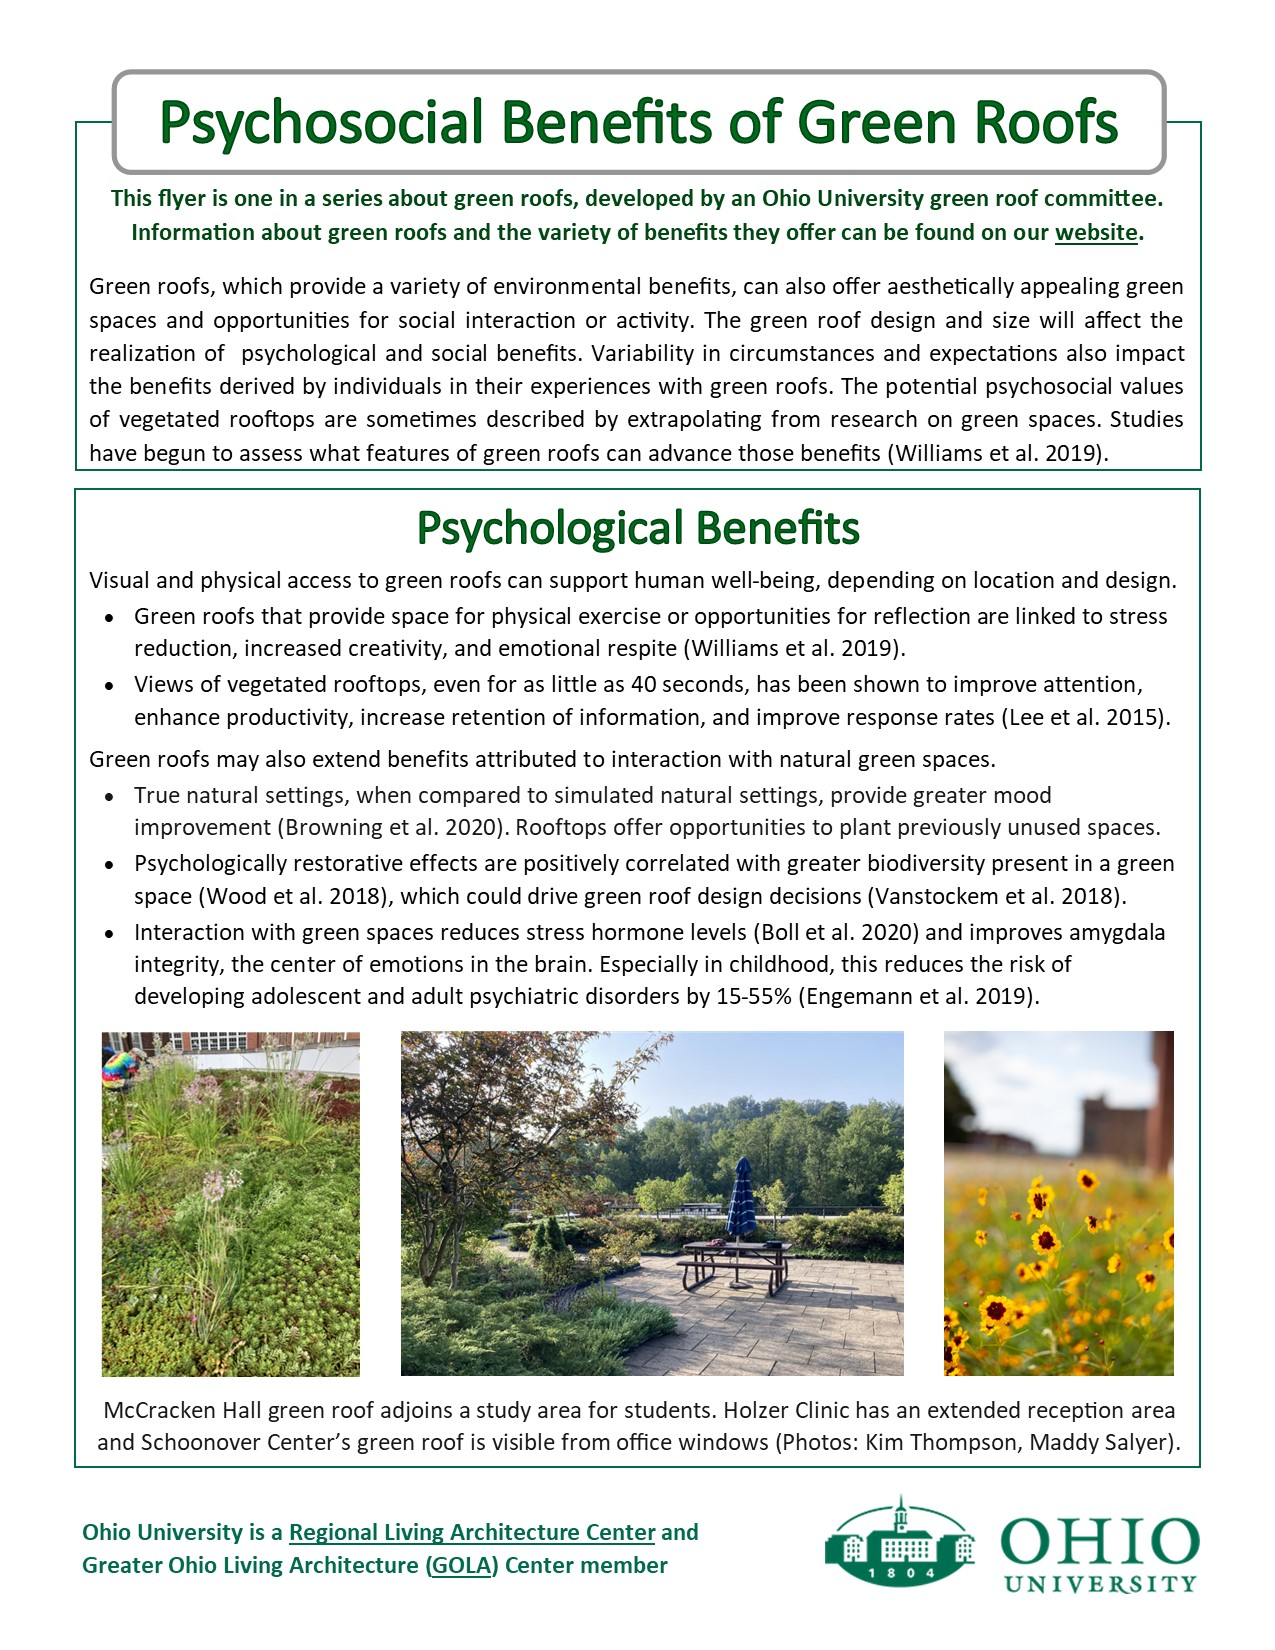 Psychosocial benefits of Green Roofs flyer p. 1